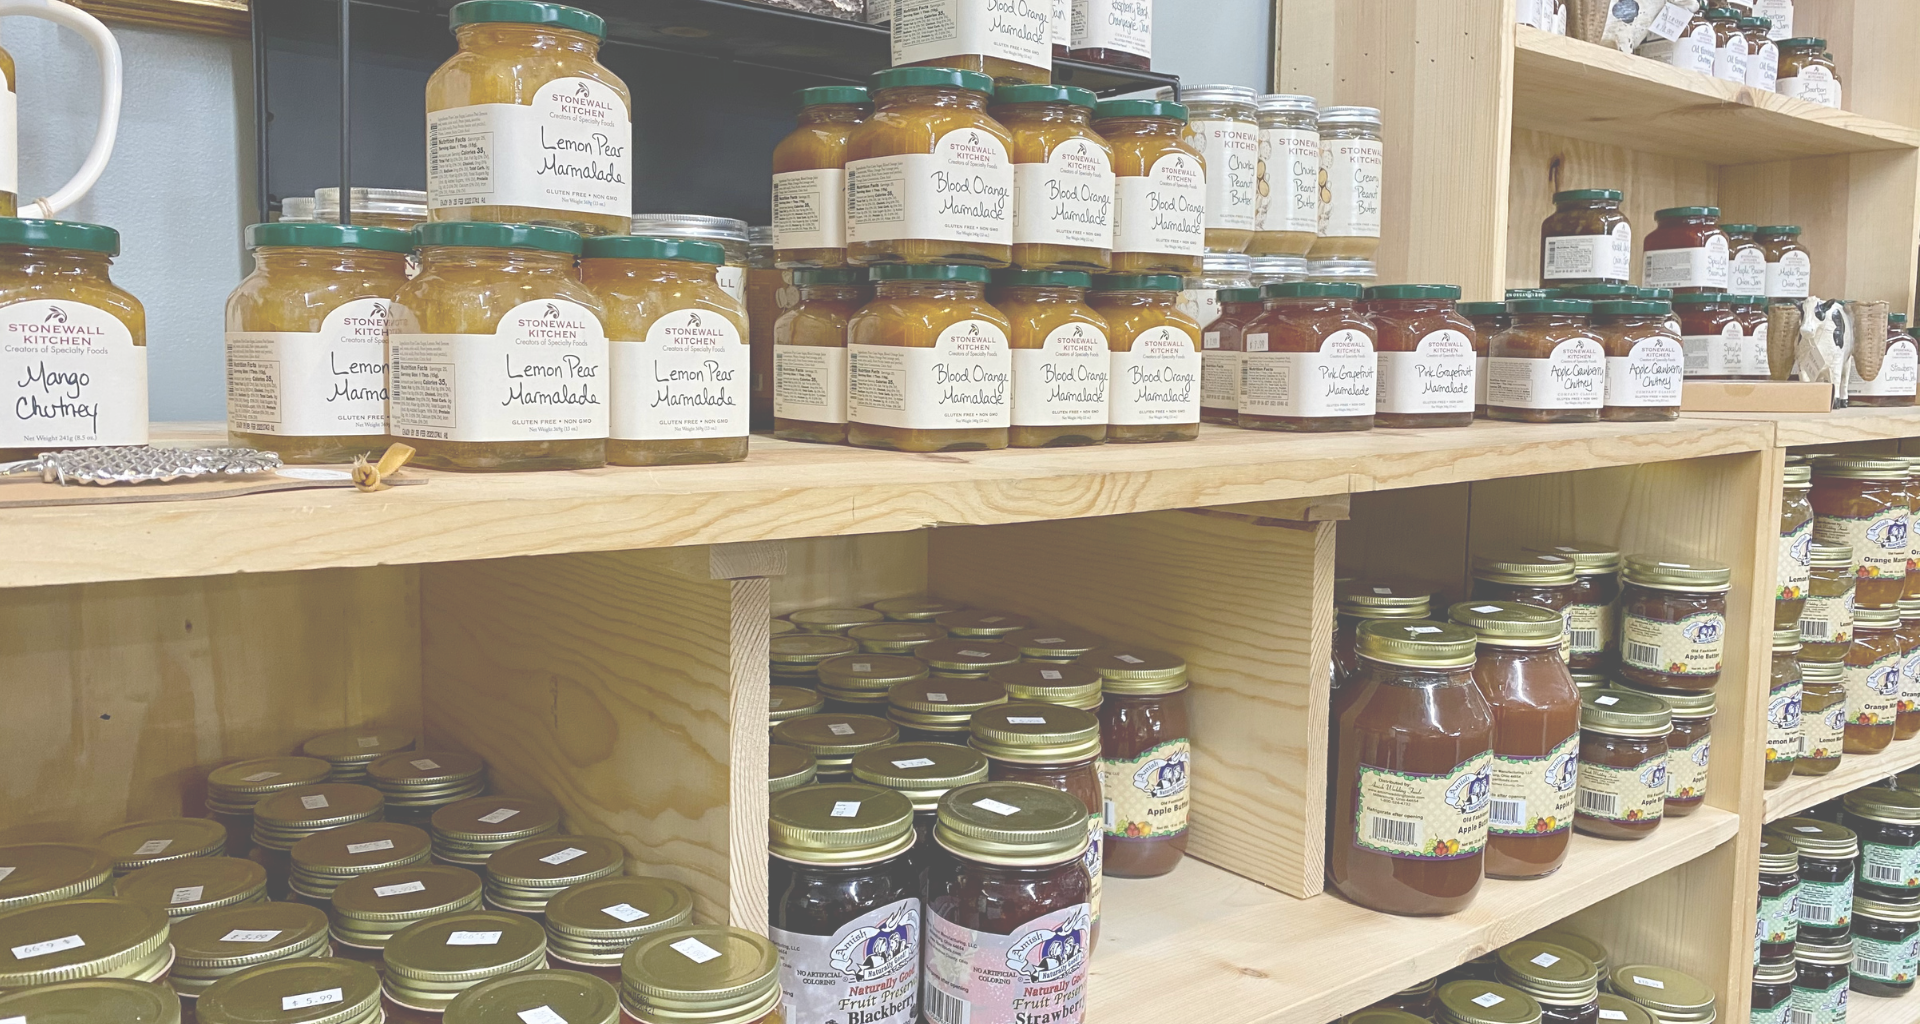 Marmalade jars on shelves